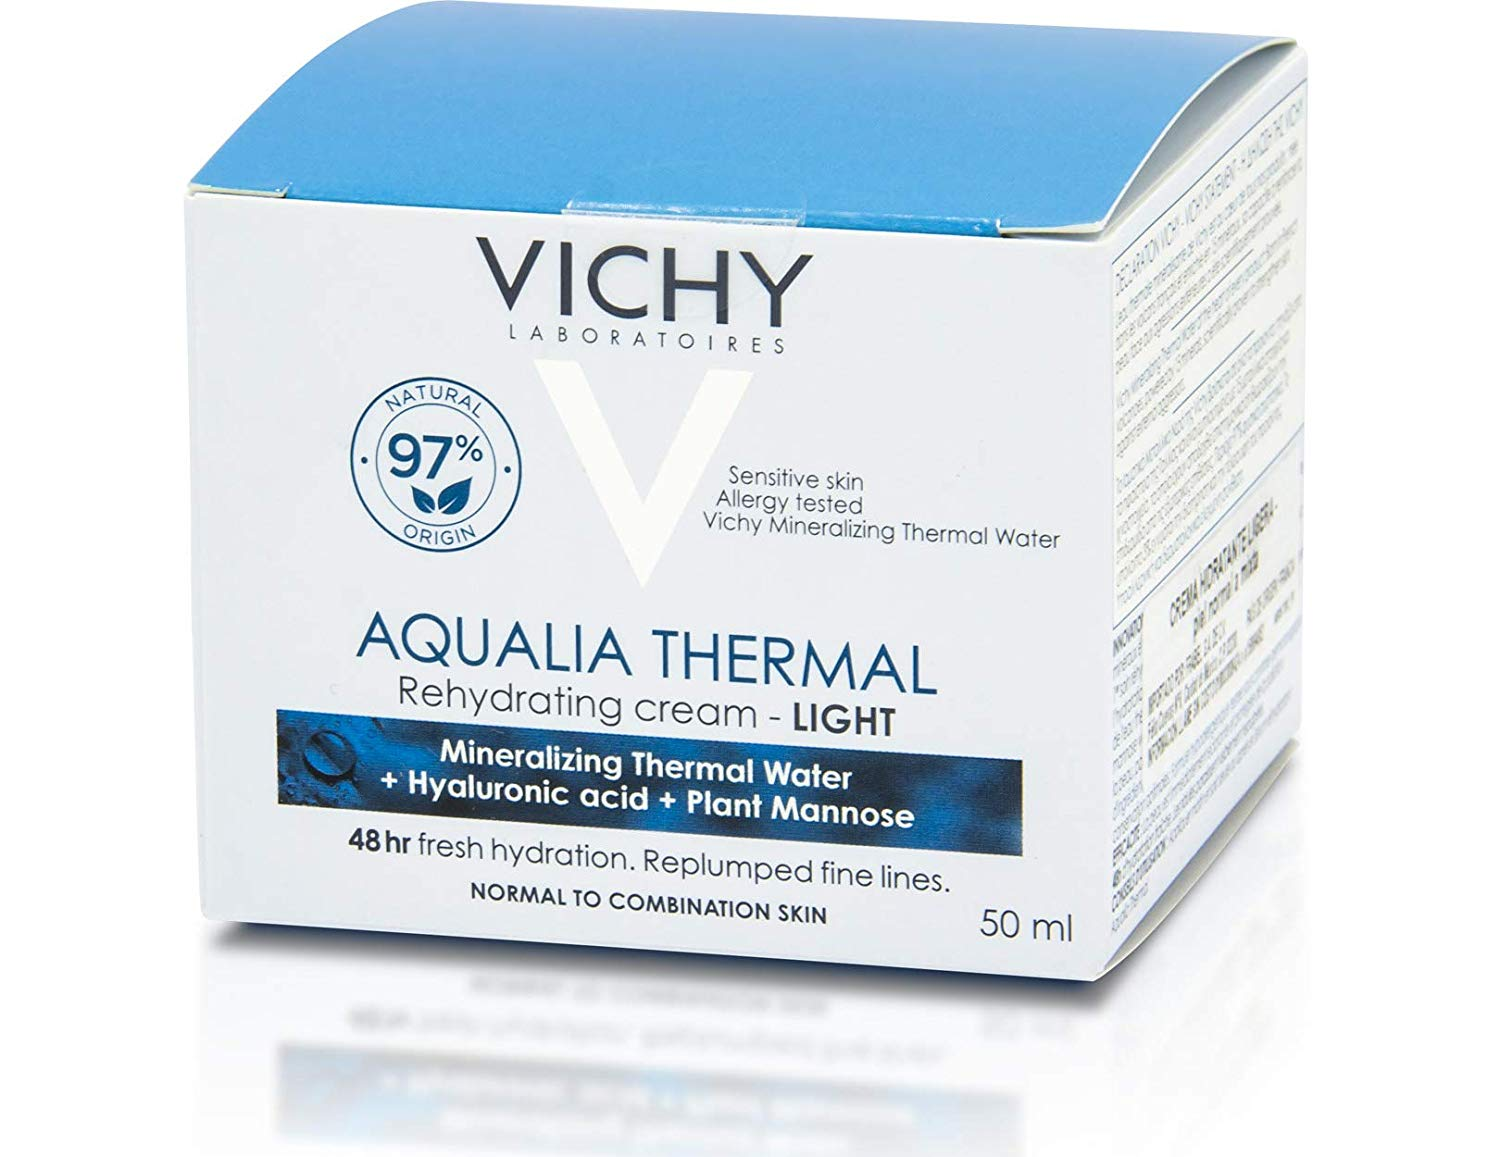 Vichy Aqualia Thermal Leggera